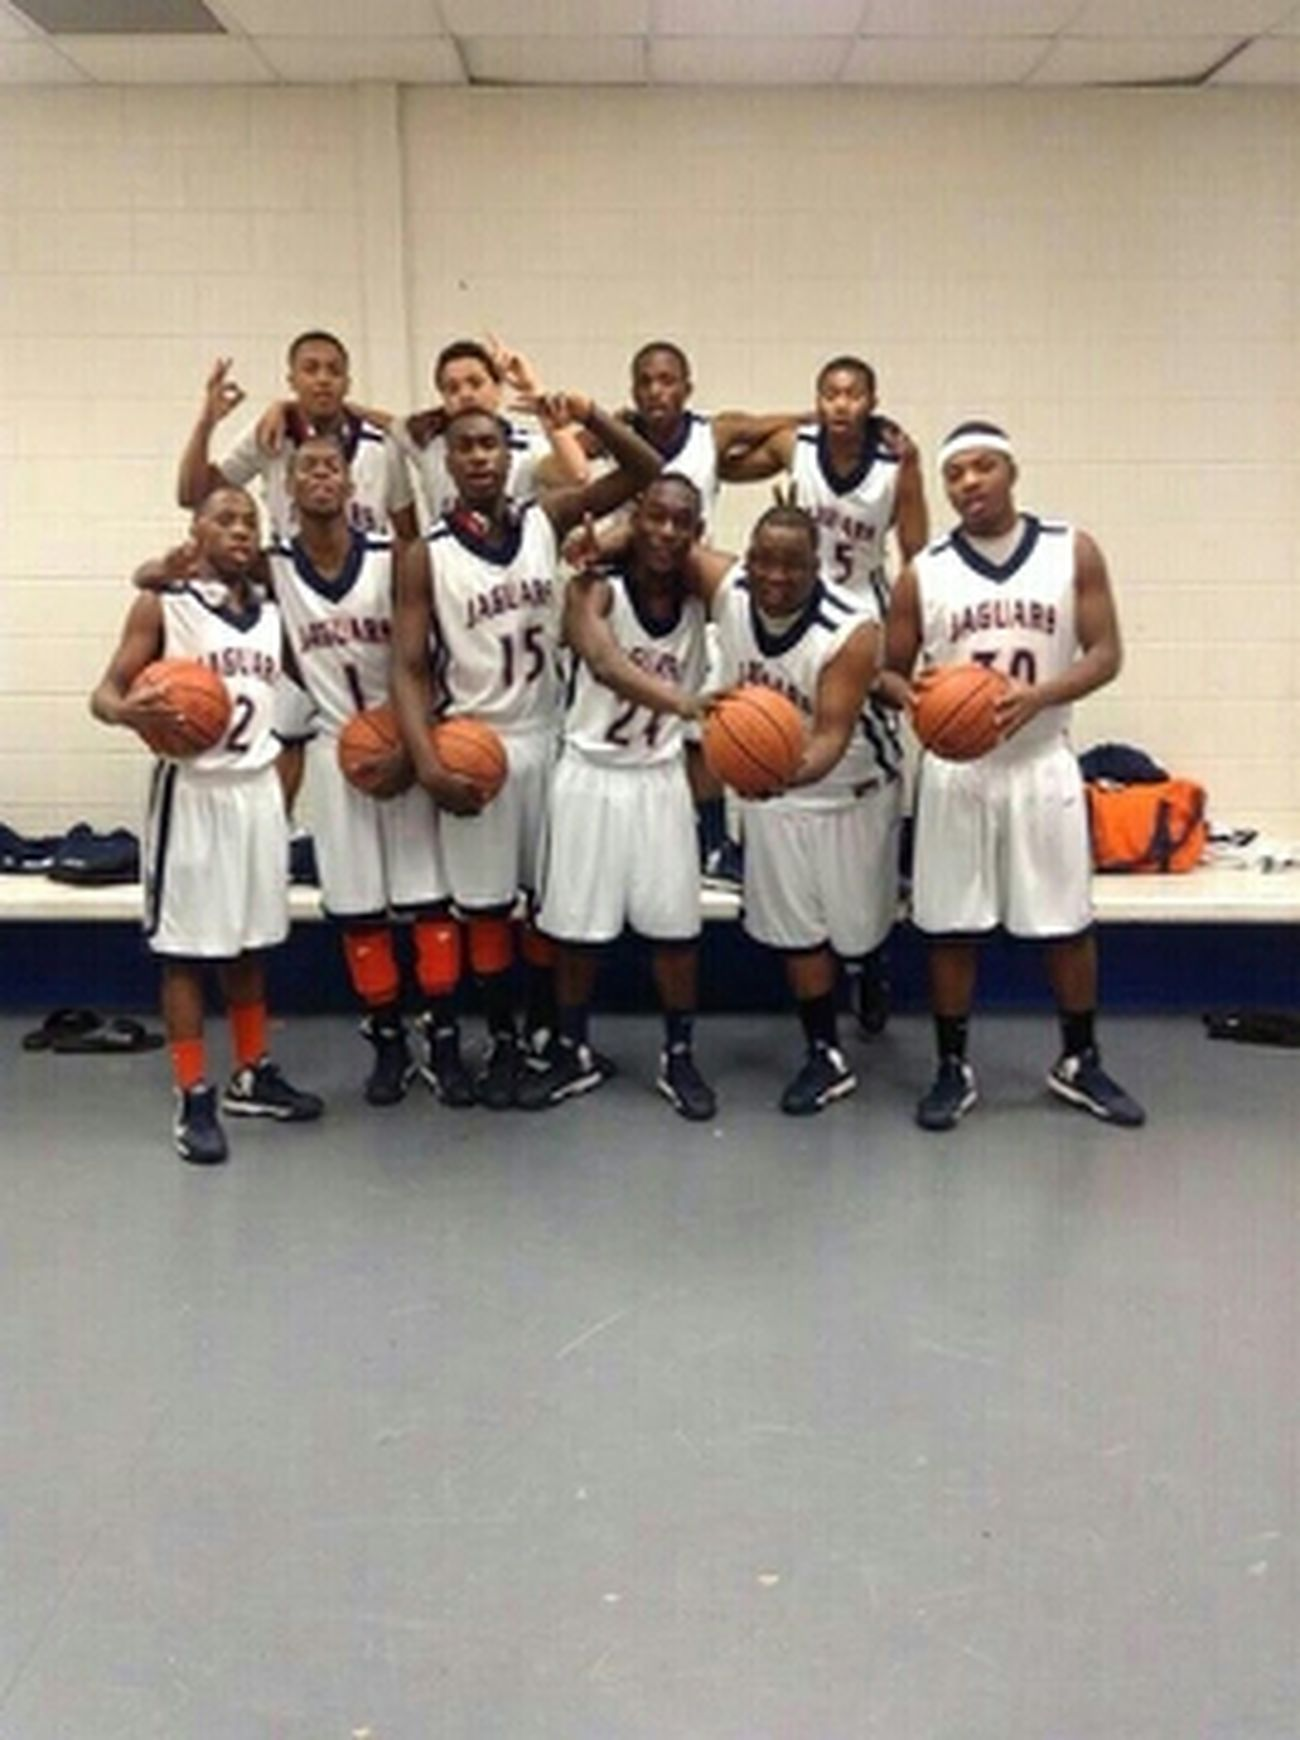 My Favorite Boys. #Jersey1 #TeamJosh ♥